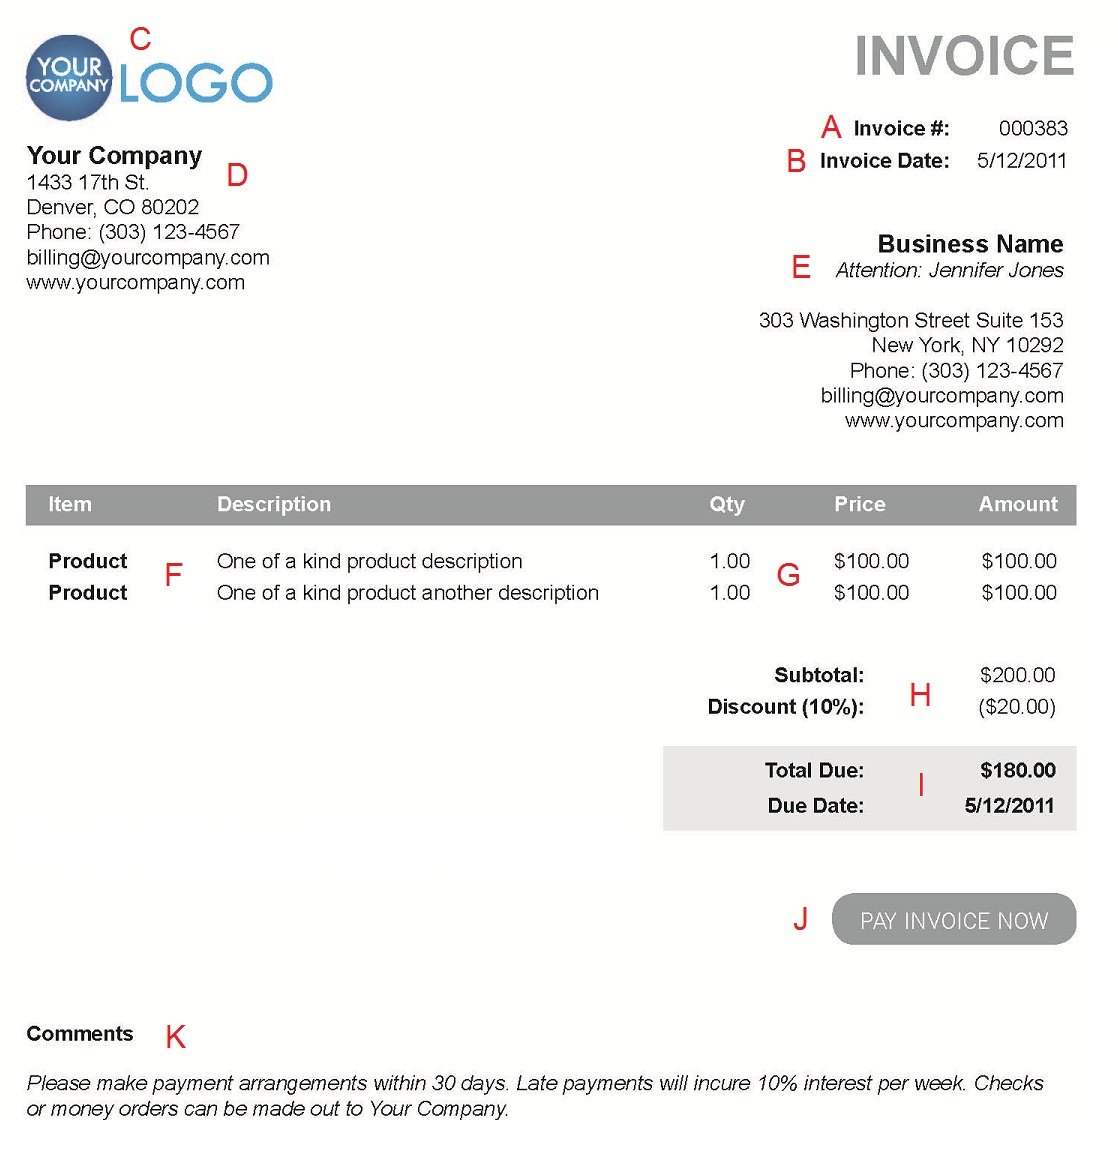 Hucareus  Mesmerizing The  Different Sections Of An Electronic Payment Invoice With Great A  With Divine Consulting Invoice Template Free Also Google Documents Invoice Template In Addition Audi Invoice Pricing And Commercial Invoice Samples As Well As Invoice Of Car Additionally Invoice For Website From Paysimplecom With Hucareus  Great The  Different Sections Of An Electronic Payment Invoice With Divine A  And Mesmerizing Consulting Invoice Template Free Also Google Documents Invoice Template In Addition Audi Invoice Pricing From Paysimplecom